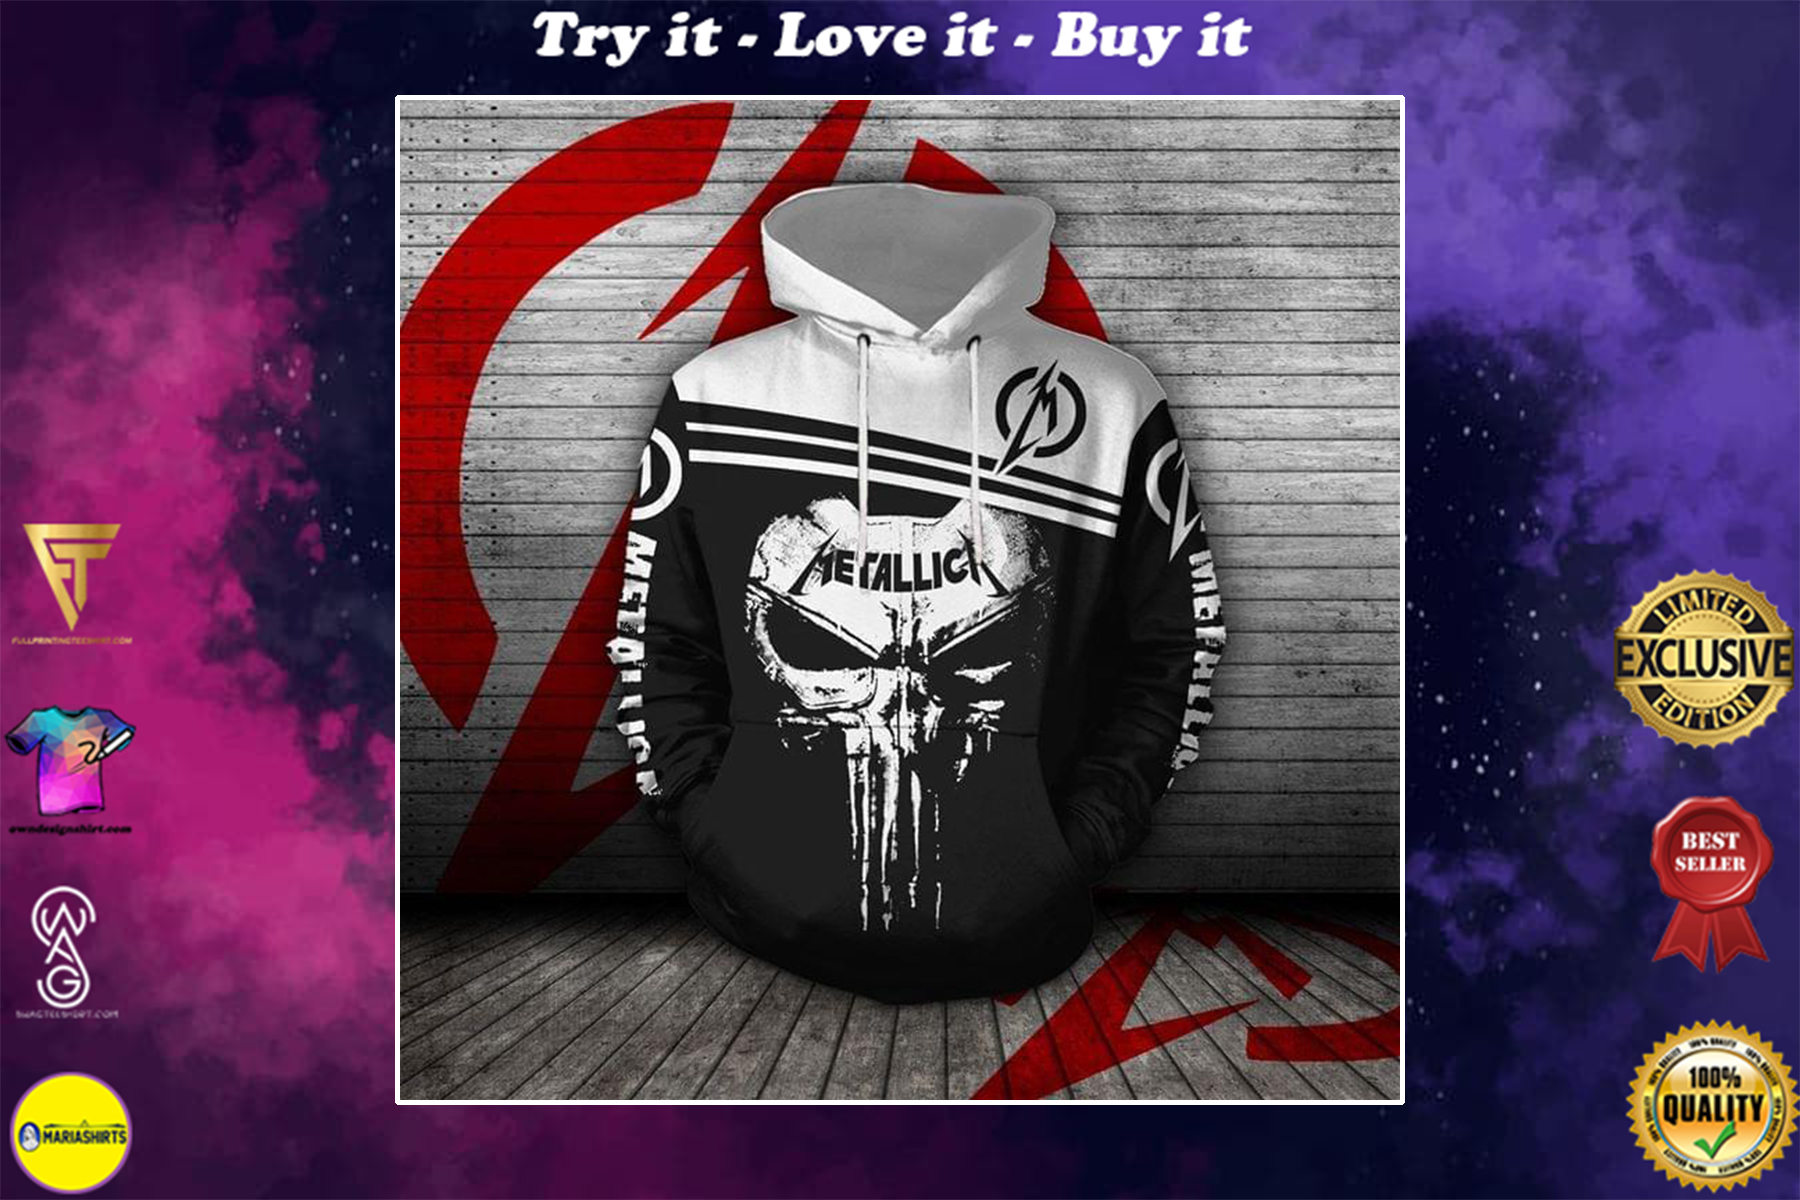 [special edition] metallica rock band skull punisher full over printed shirt - maria